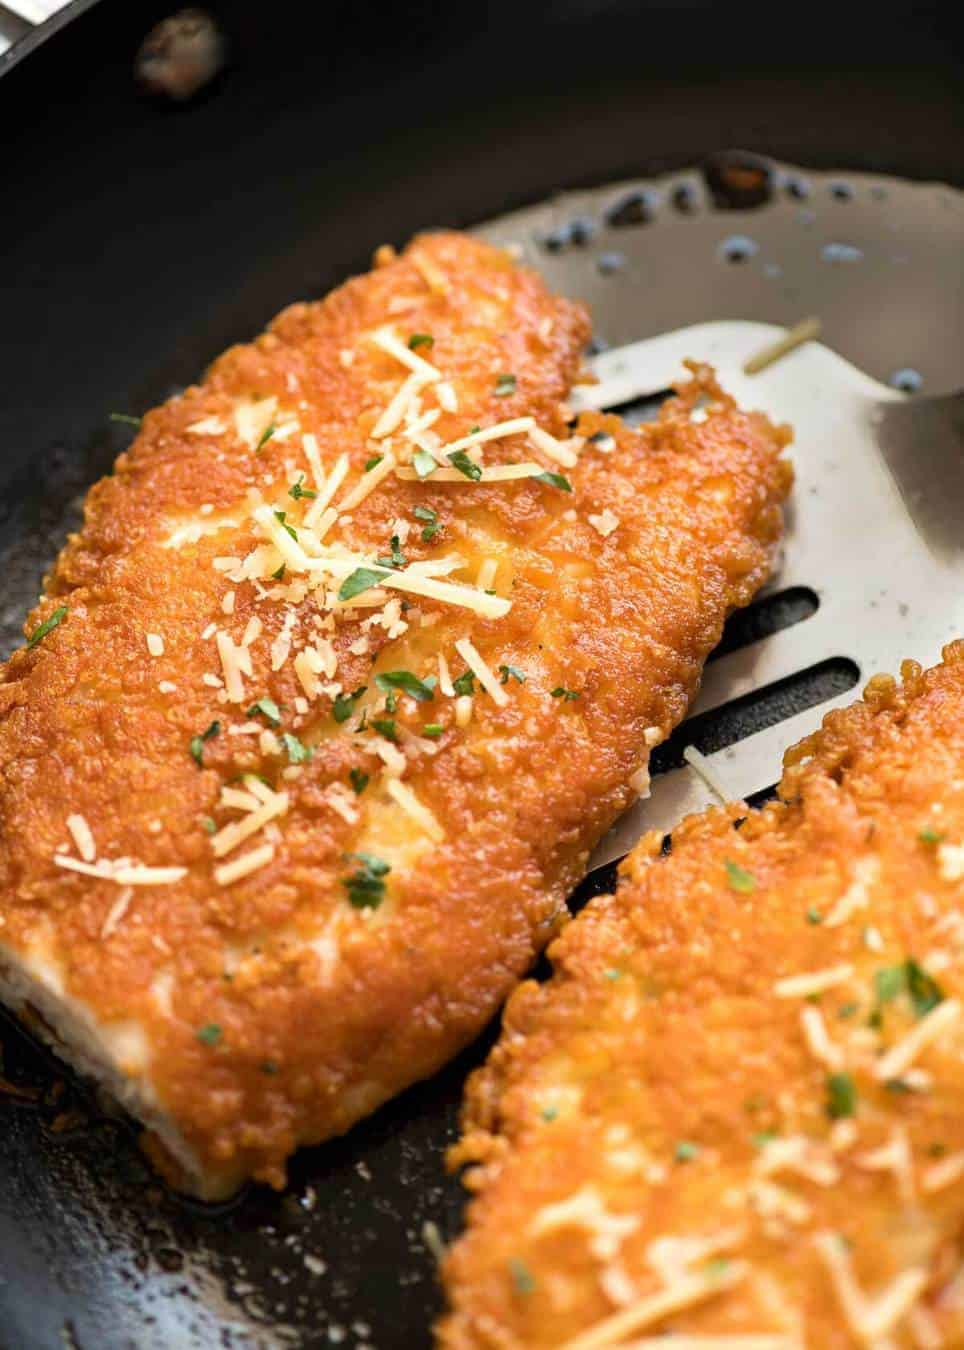 Parmesan Crusted Chicken Breast being cooked in skillet.